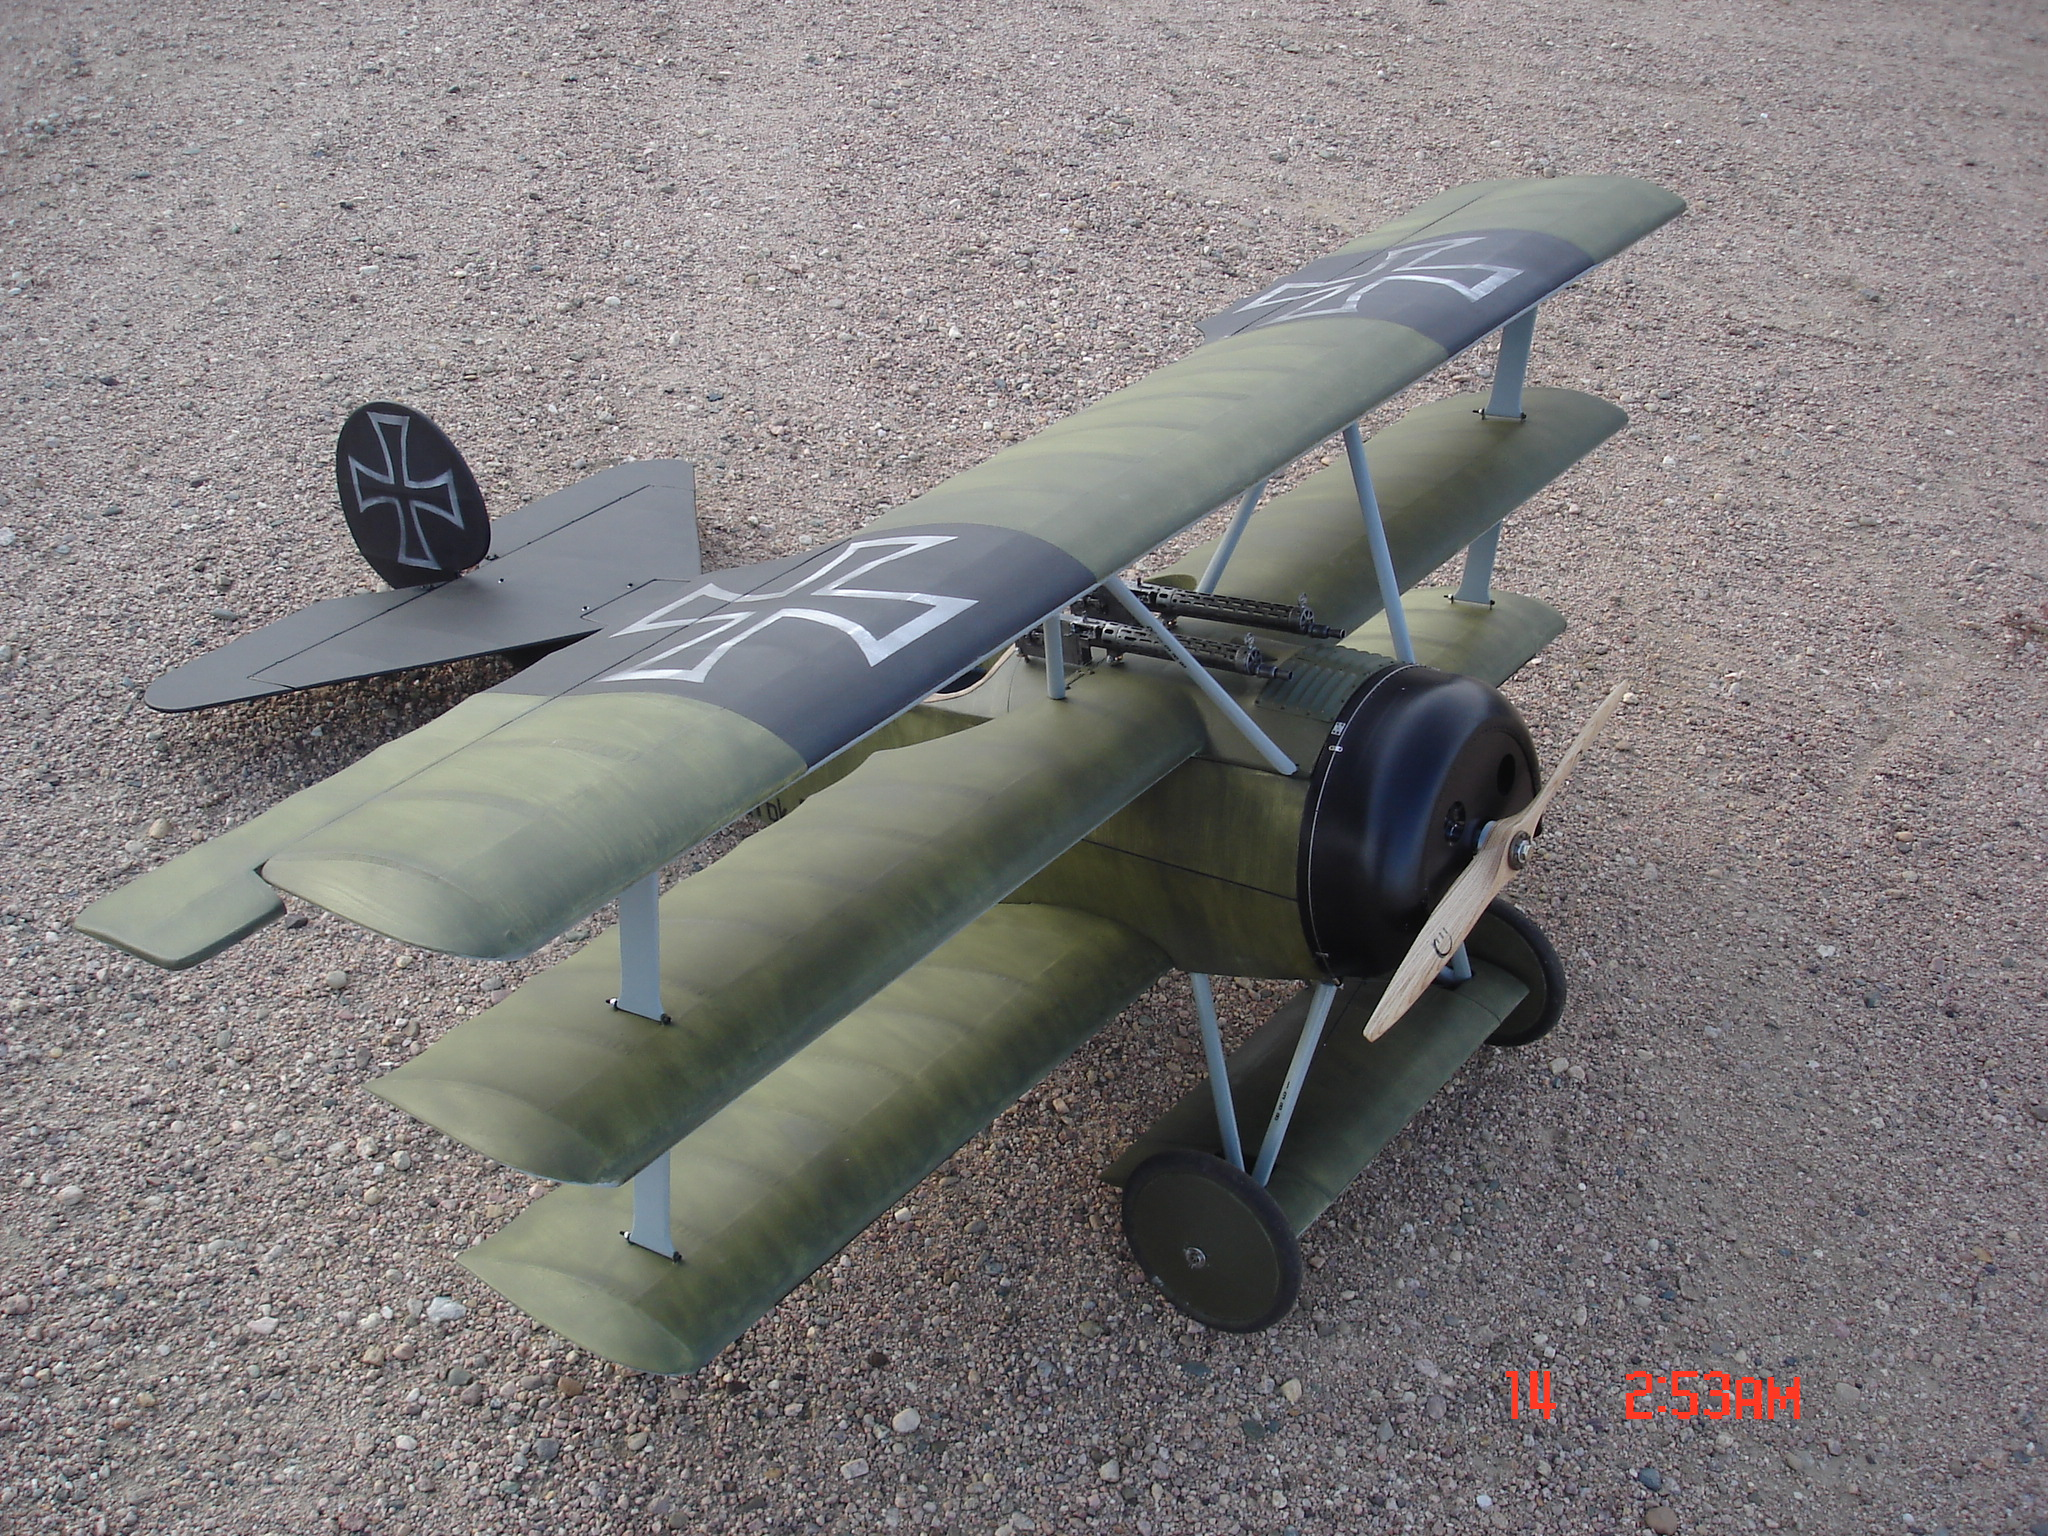 Click image for larger version  Name:Fokker maiden 003.JPG Views:318 Size:1.43 MB ID:1958931